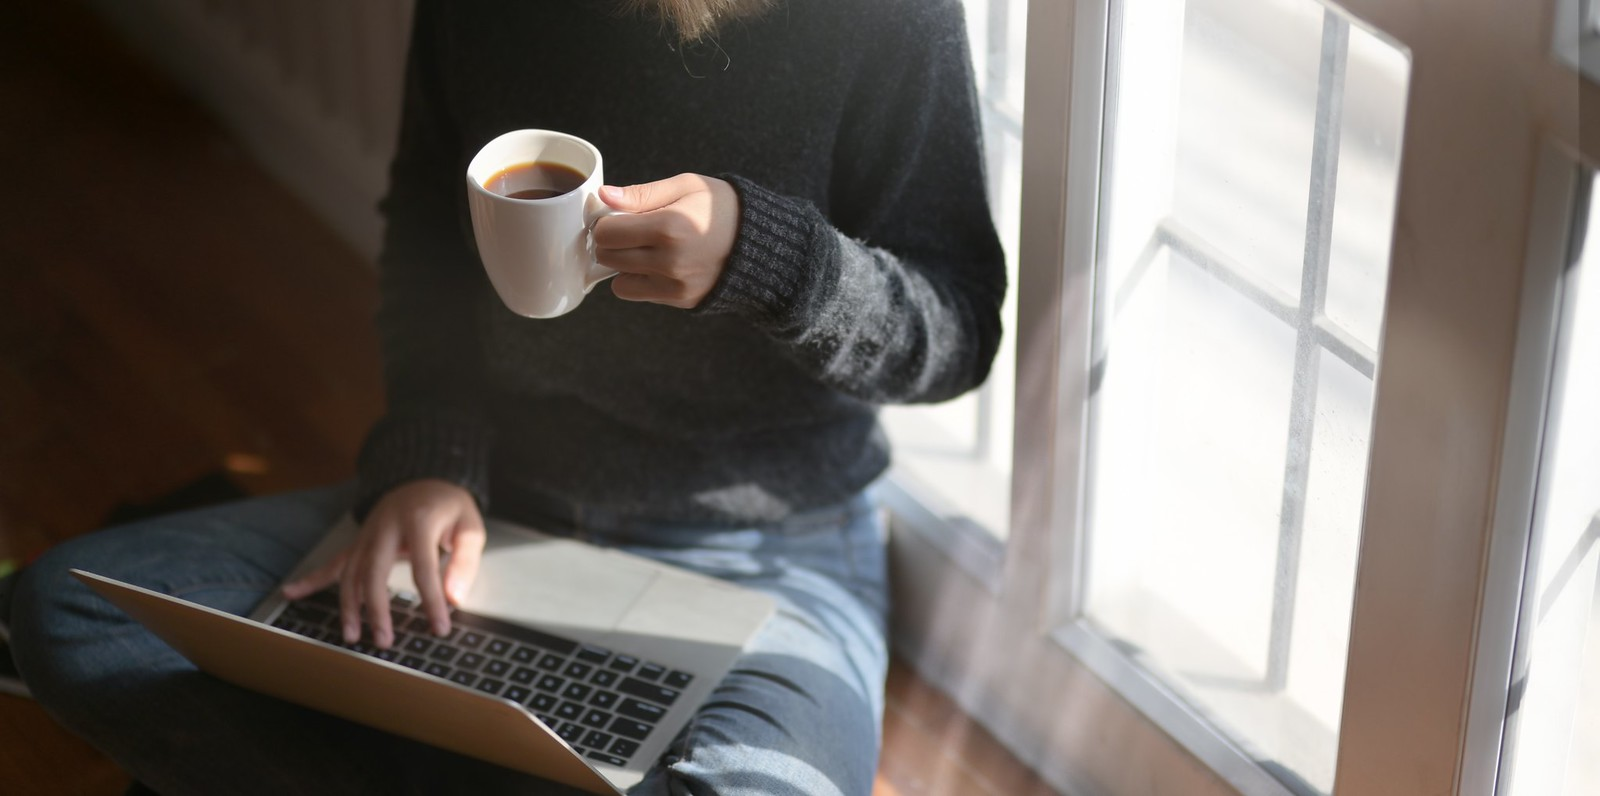 Woman using laptop while holding a cup of coffee - Credit to https://homegets.com/